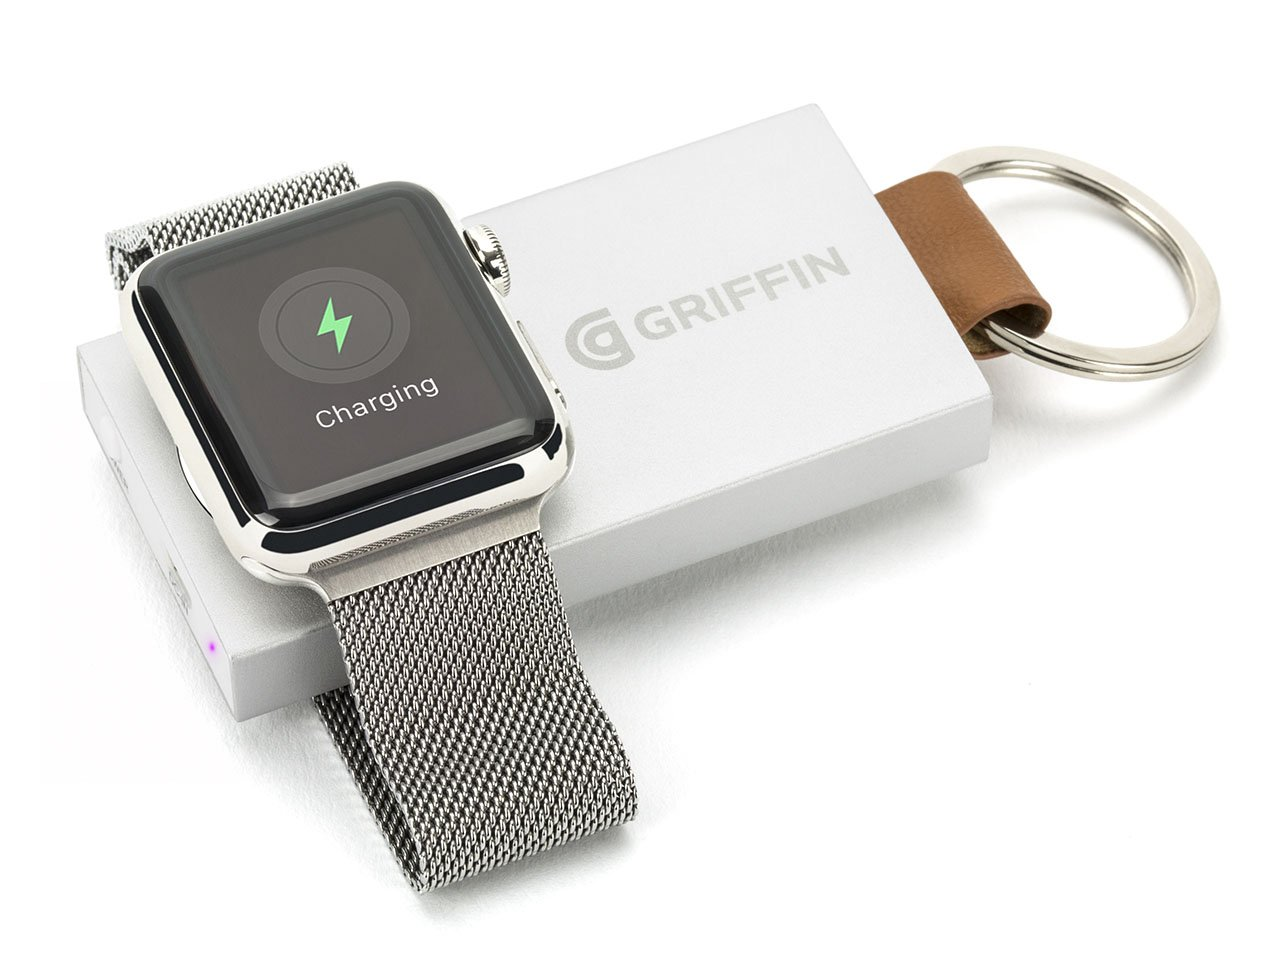 Griffin Travel Power Bank Backup Battery for Apple Watch - Ultra-Portable Recharging Key Chain for Apple Watch